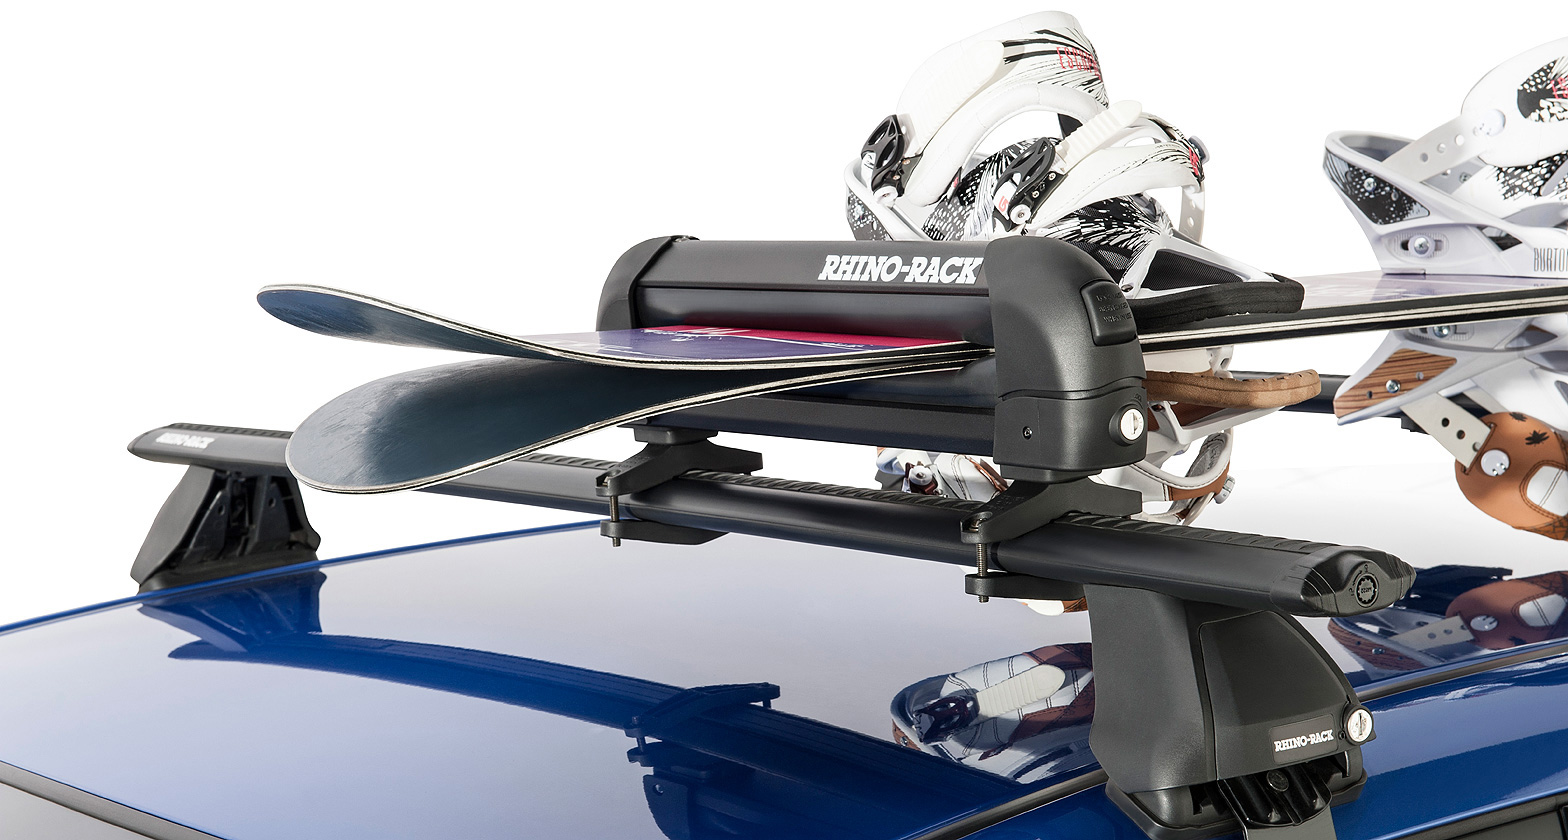 573 Ski And Snowboard Carrier 3 Skis Or 2 Snowboards Rhino Rack